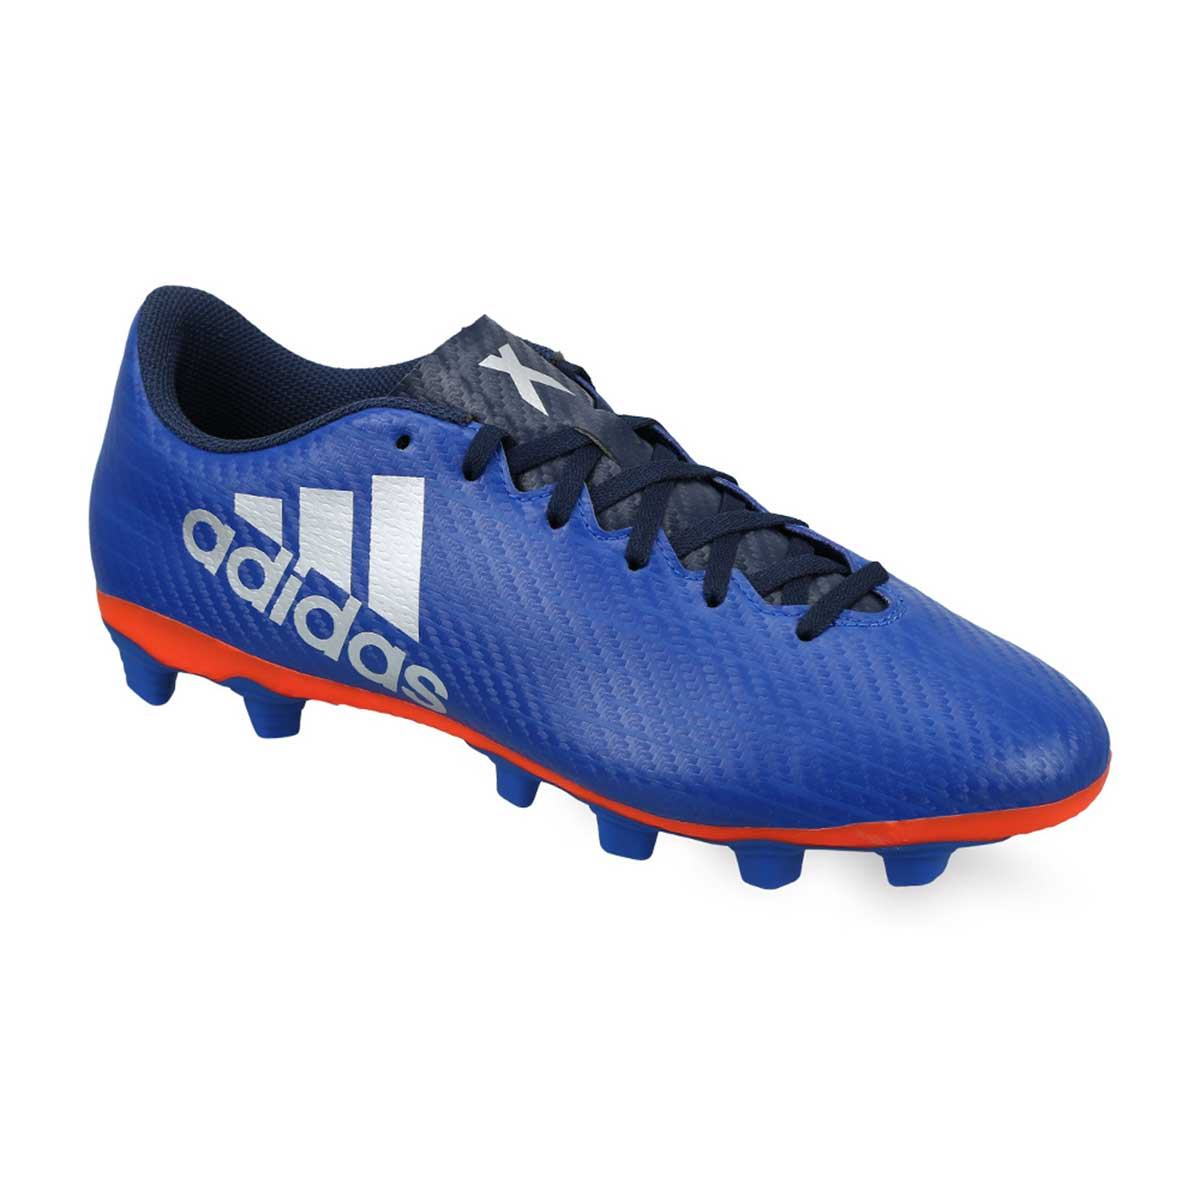 Buy Adidas X 16.4 FXG Football Shoes (Royal Silver Red) Online ad2598606419